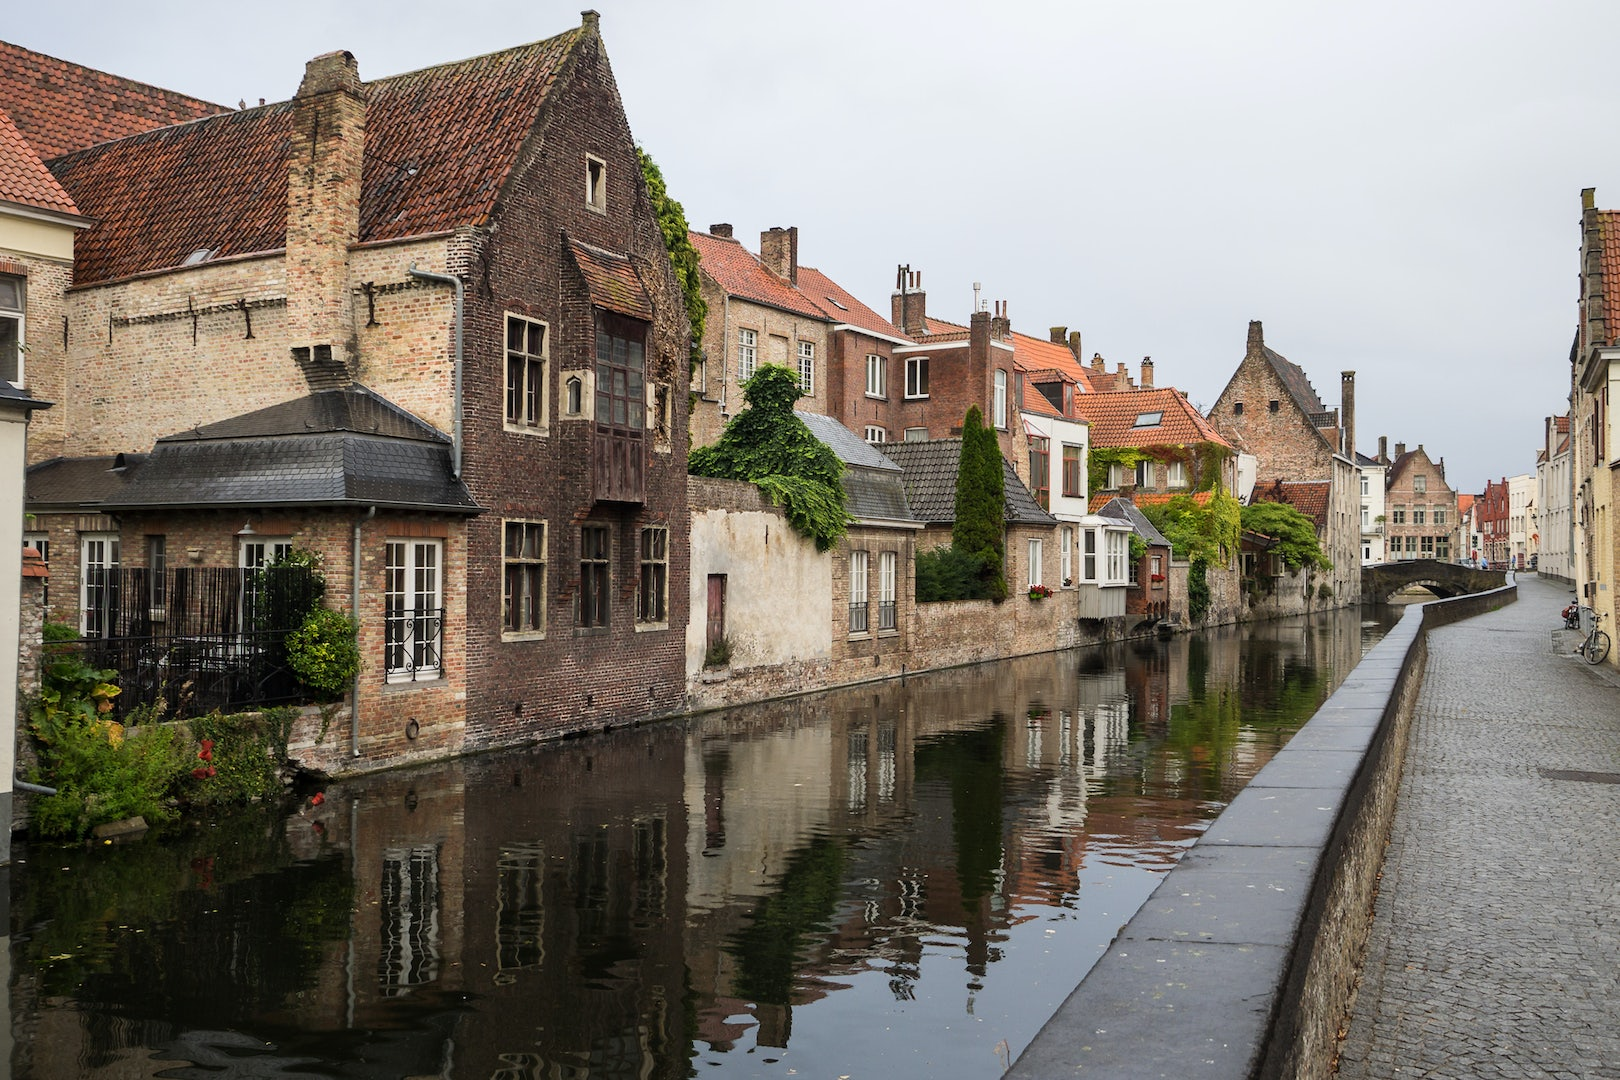 houses by the canal in Bruges